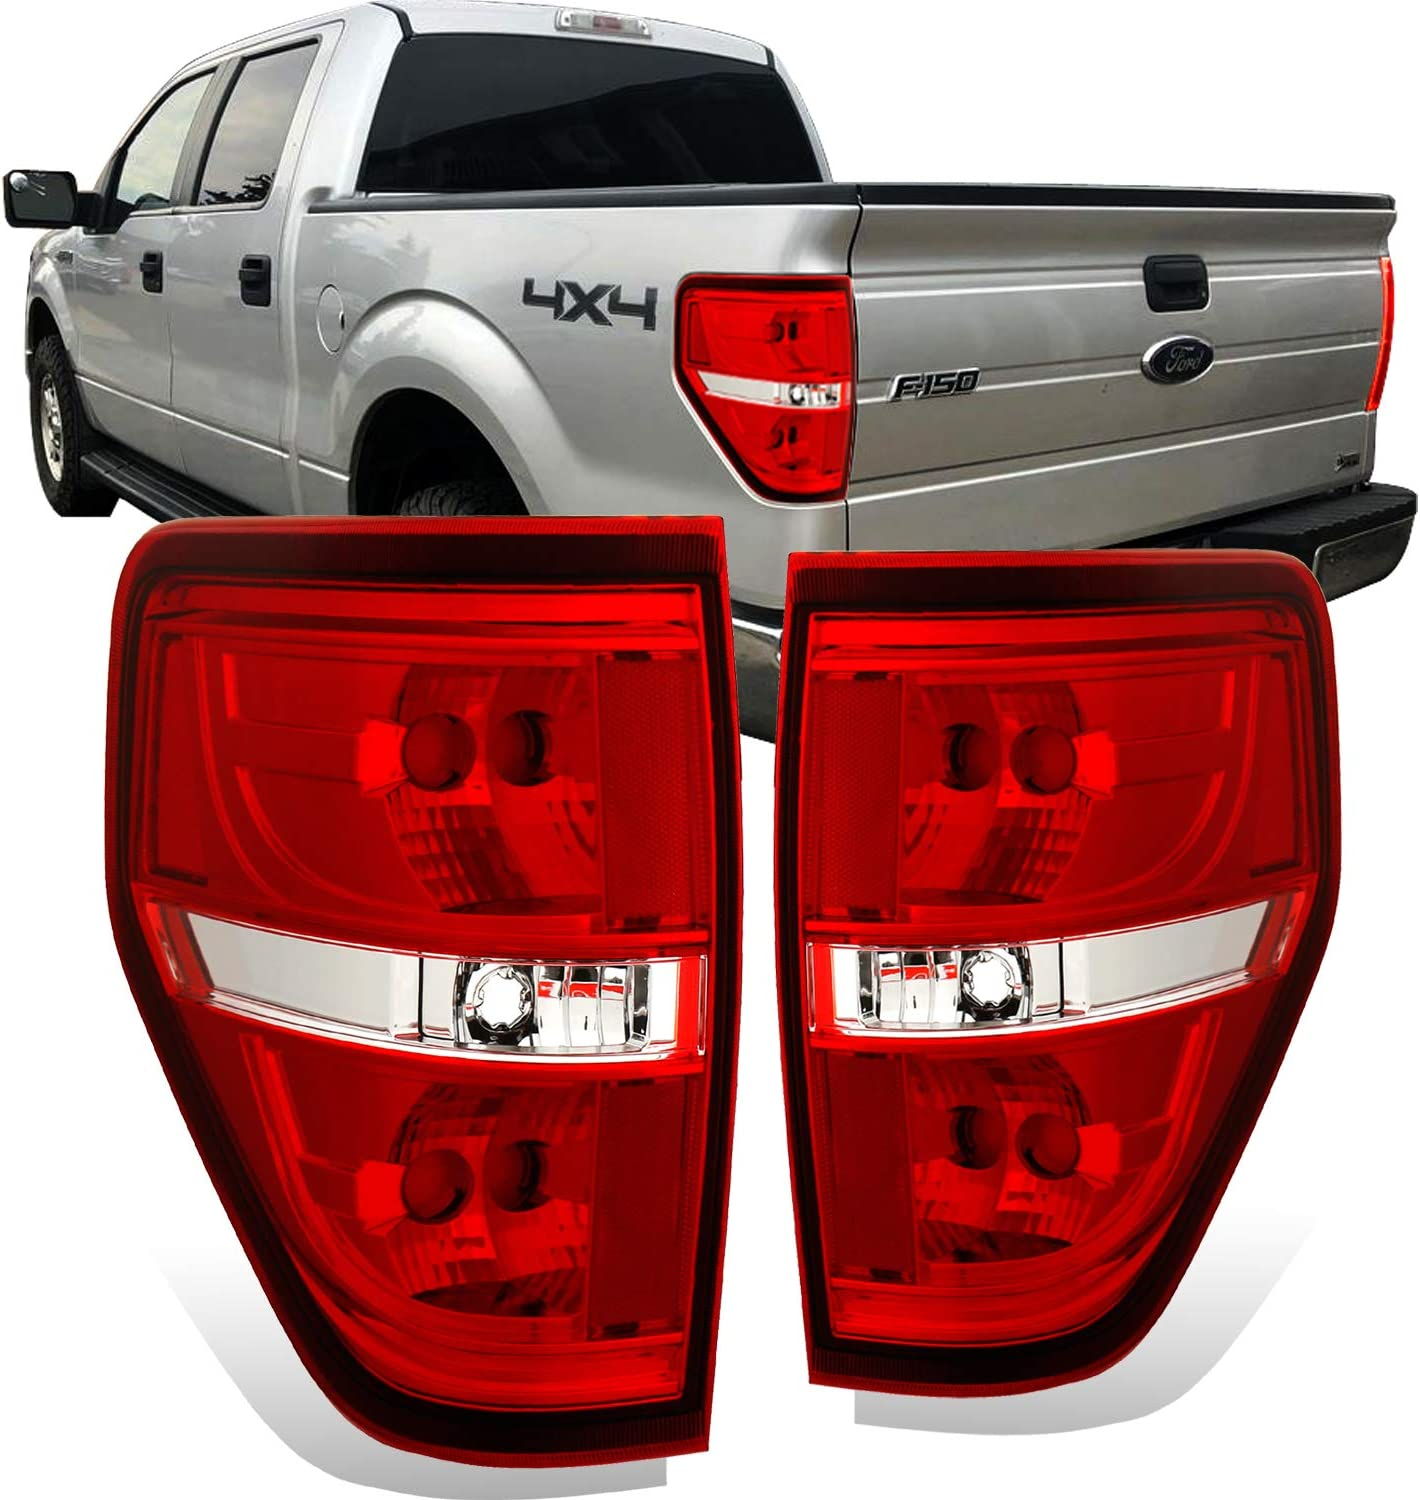 AmeriLite Red/Clear Brake Rear Direct OE Replacement Tail Lights for 2009-2014 Ford F150 F-150 - Passenger and Driver Side